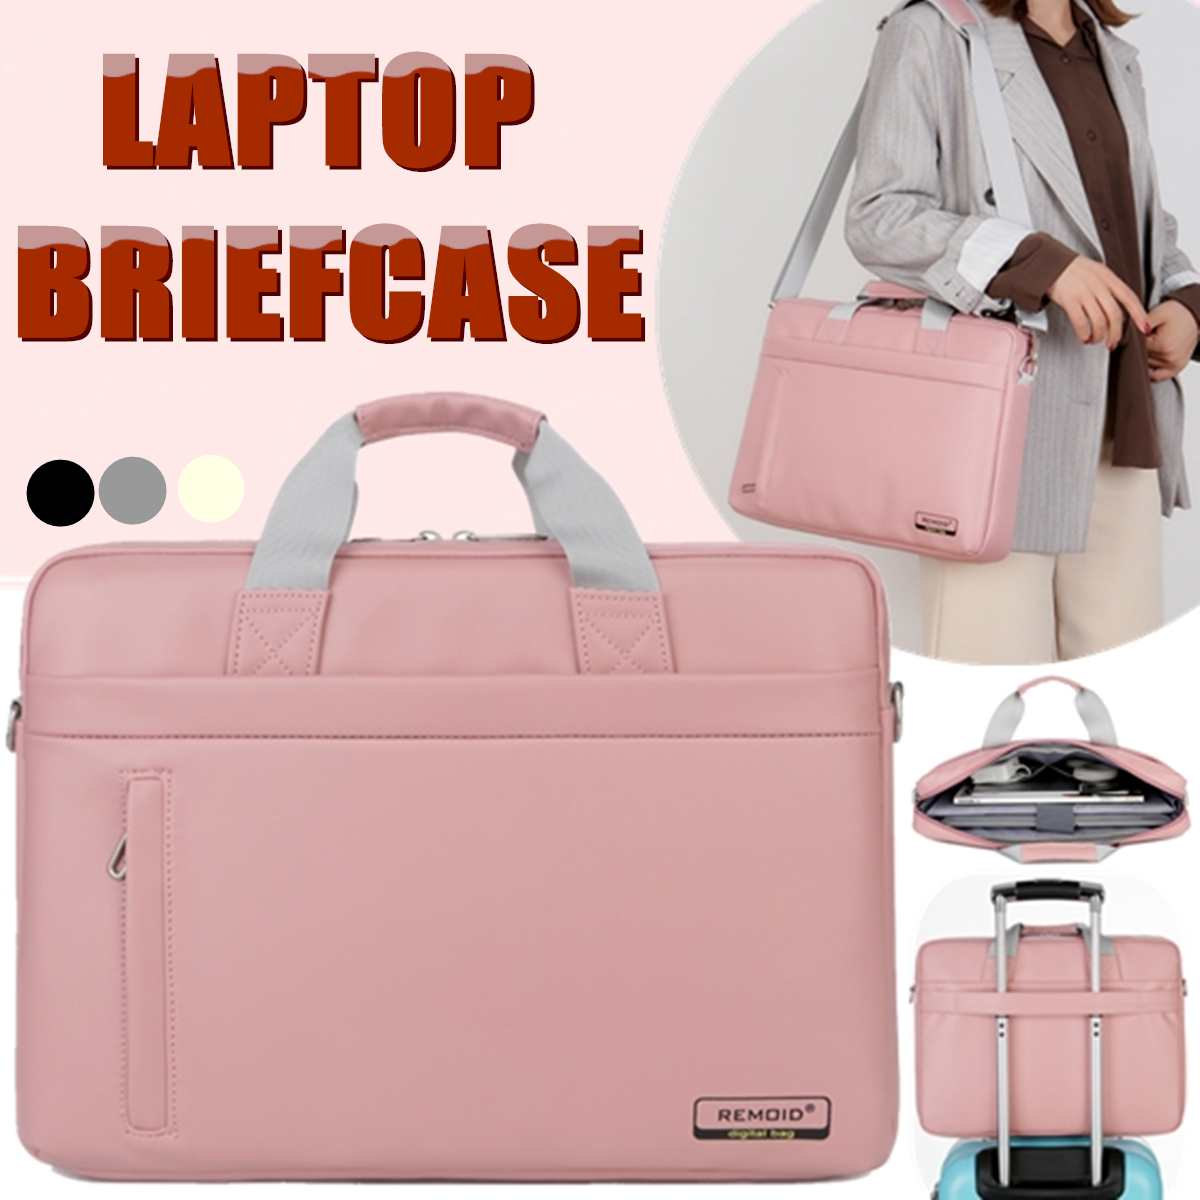 Osmond Women PU Laptop Bag 15.6 Inch Notebook Carrying Case Briefcase For Macbook Air Men Waterproof Handbags Shoulder Bag Pink